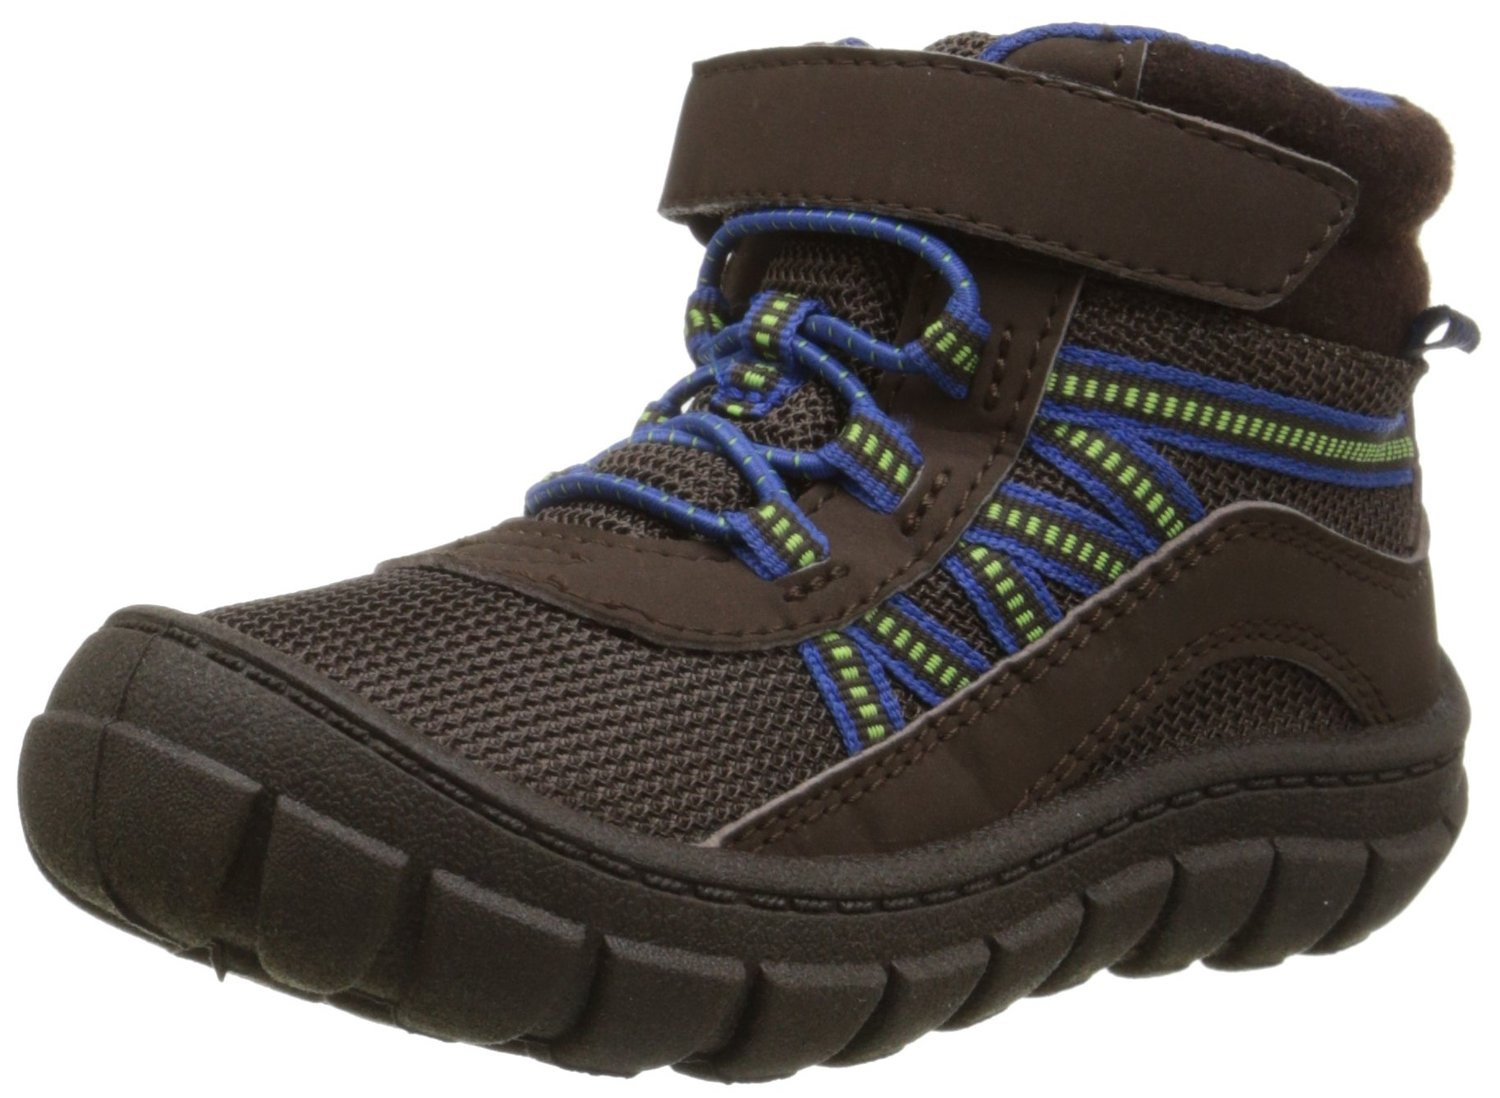 OshKosh B'Gosh Griffin B Bungee-Lace Boot (Toddler/Little Kid)